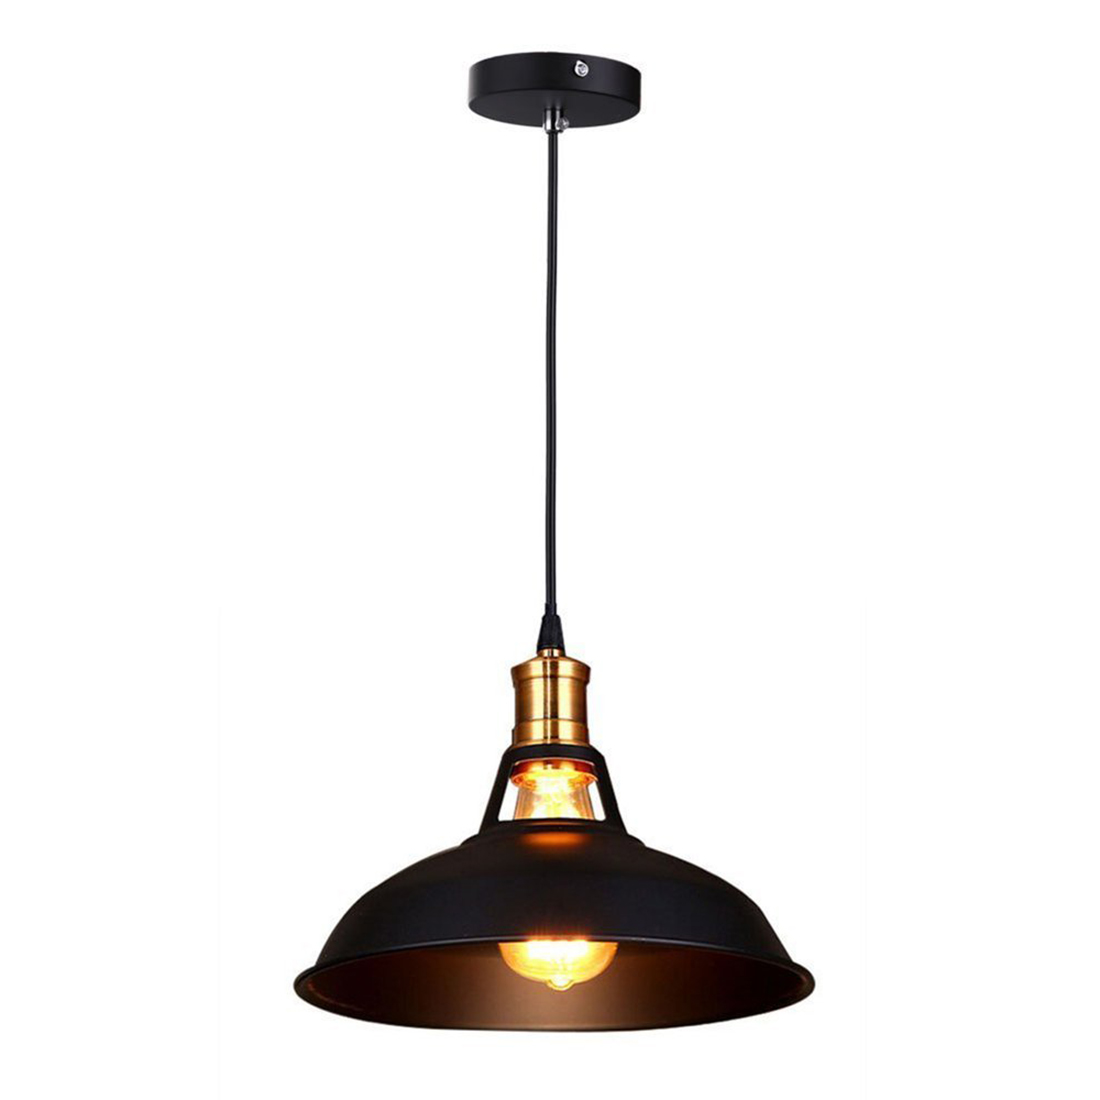 Retro Industrial Edison Simplicity Chandelier Vintage Ceiling Lamp with Metal Shiny Nordic style Shade (Black) 10 lights creative fairy vintage edison lamp shade multiple adjustable diy ceiling spider pendent lighting chandelier 10 ligh